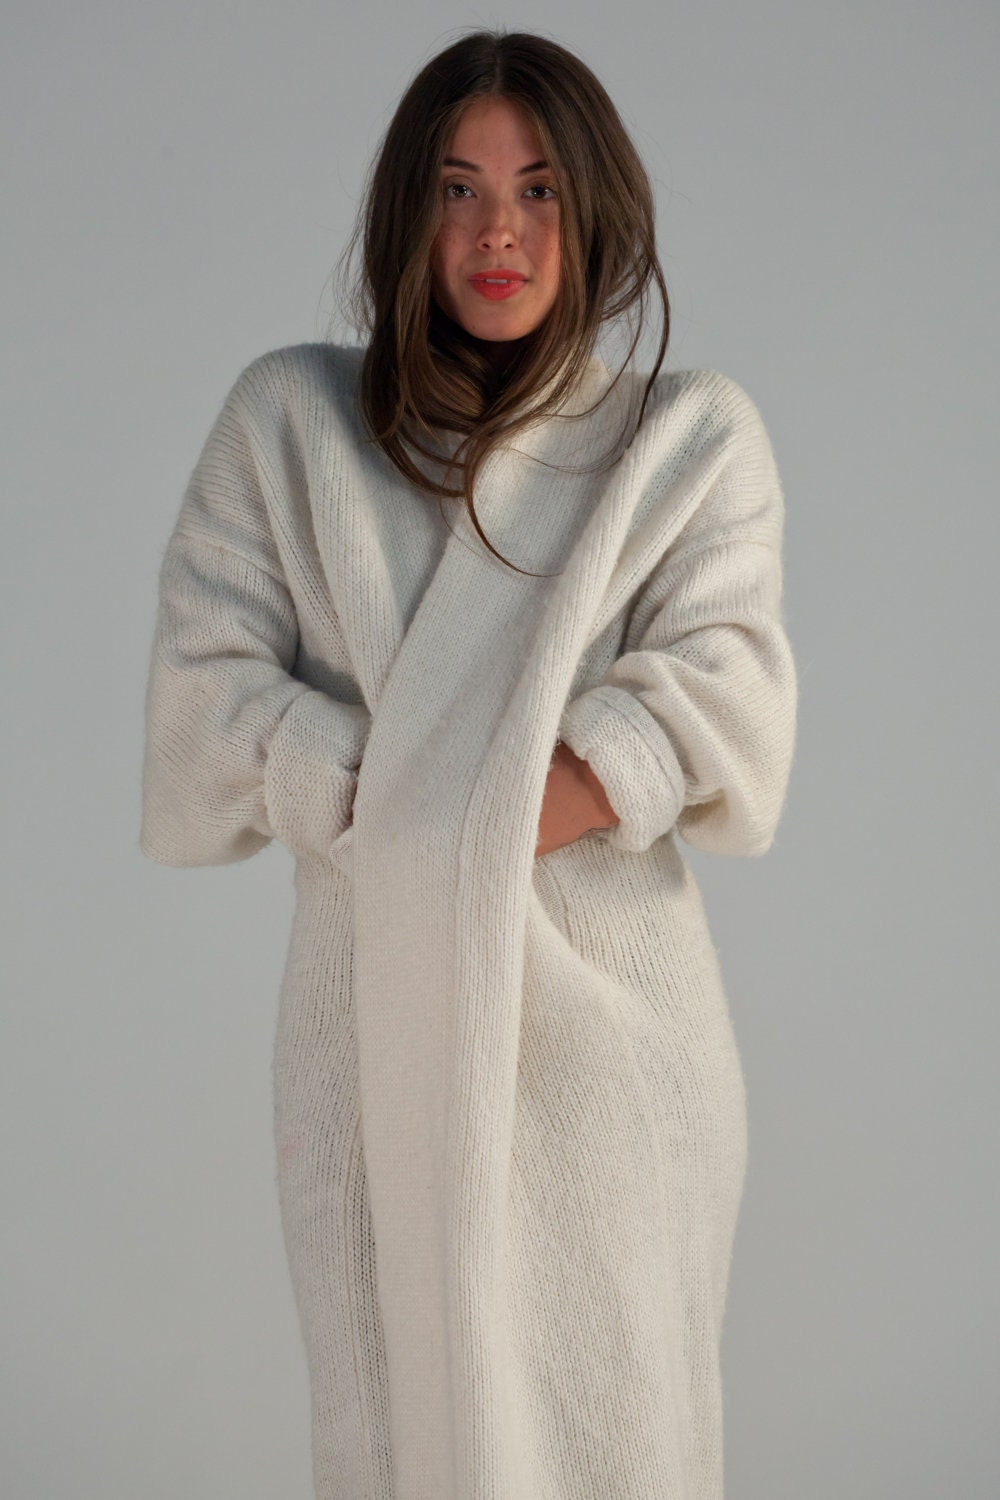 A long sweater coat is the ideal outer layer for wear outside during the in between seasons of spring and fall, those cool summer nights down by the ocean, and as an indoor garment on a frigid winter day.